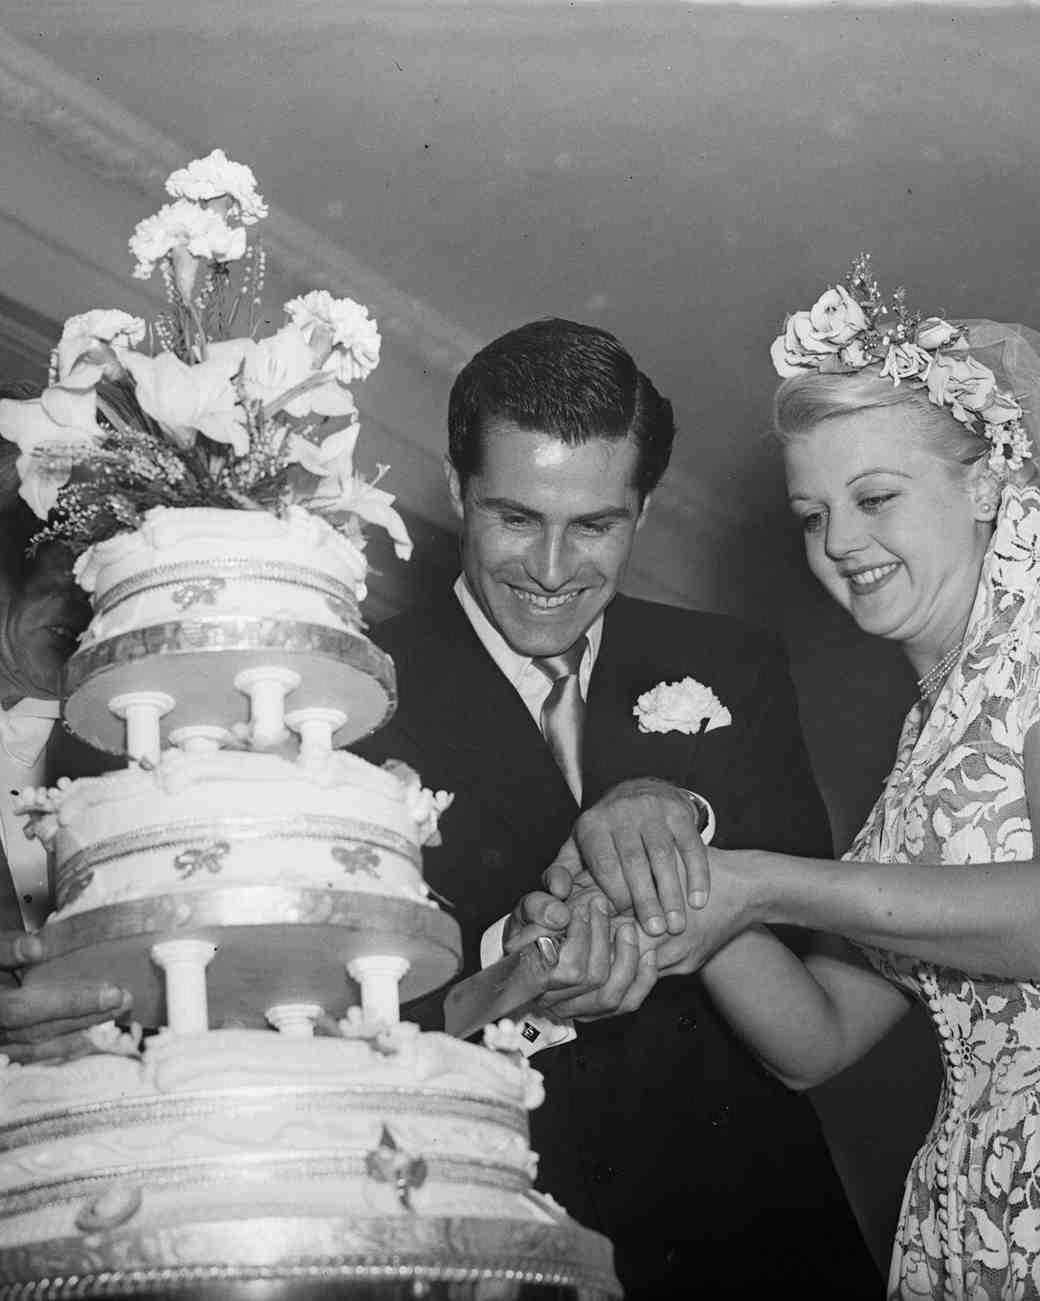 celebrity-vintage-wedding-cakes-angela-lansbury-3426448-1015.jpg